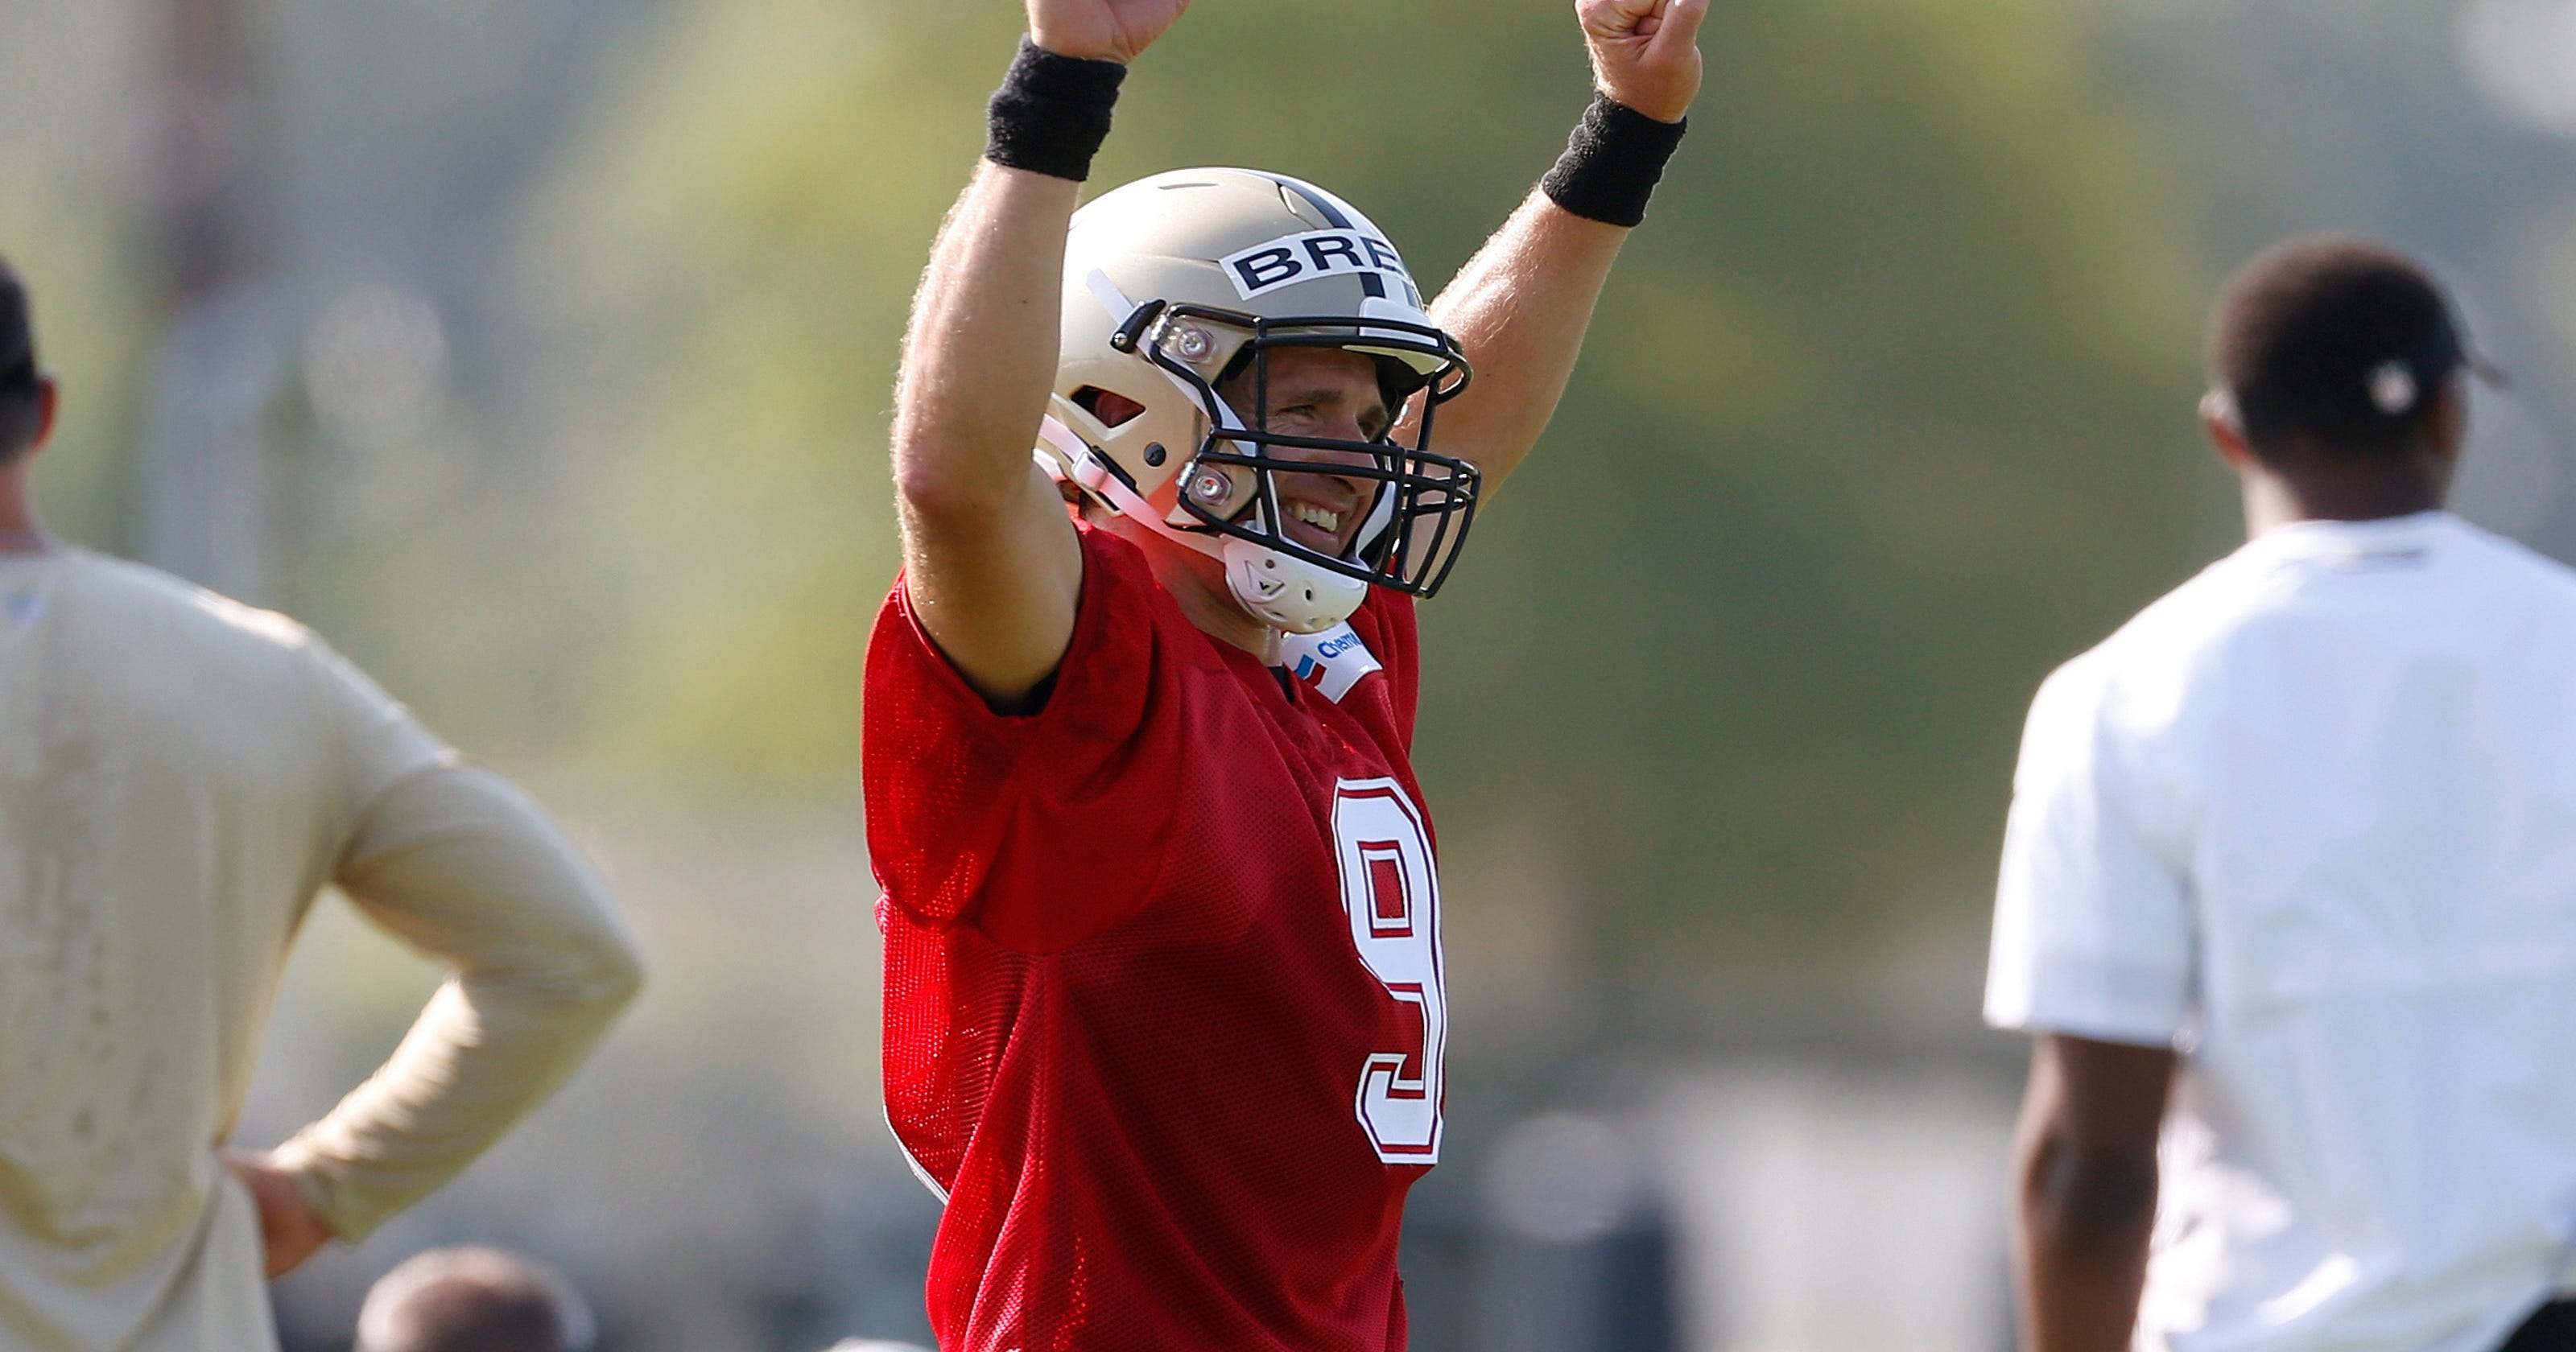 fb3044a3f Saints soar into  18 training camp with hopes high for Super Bowl LIII